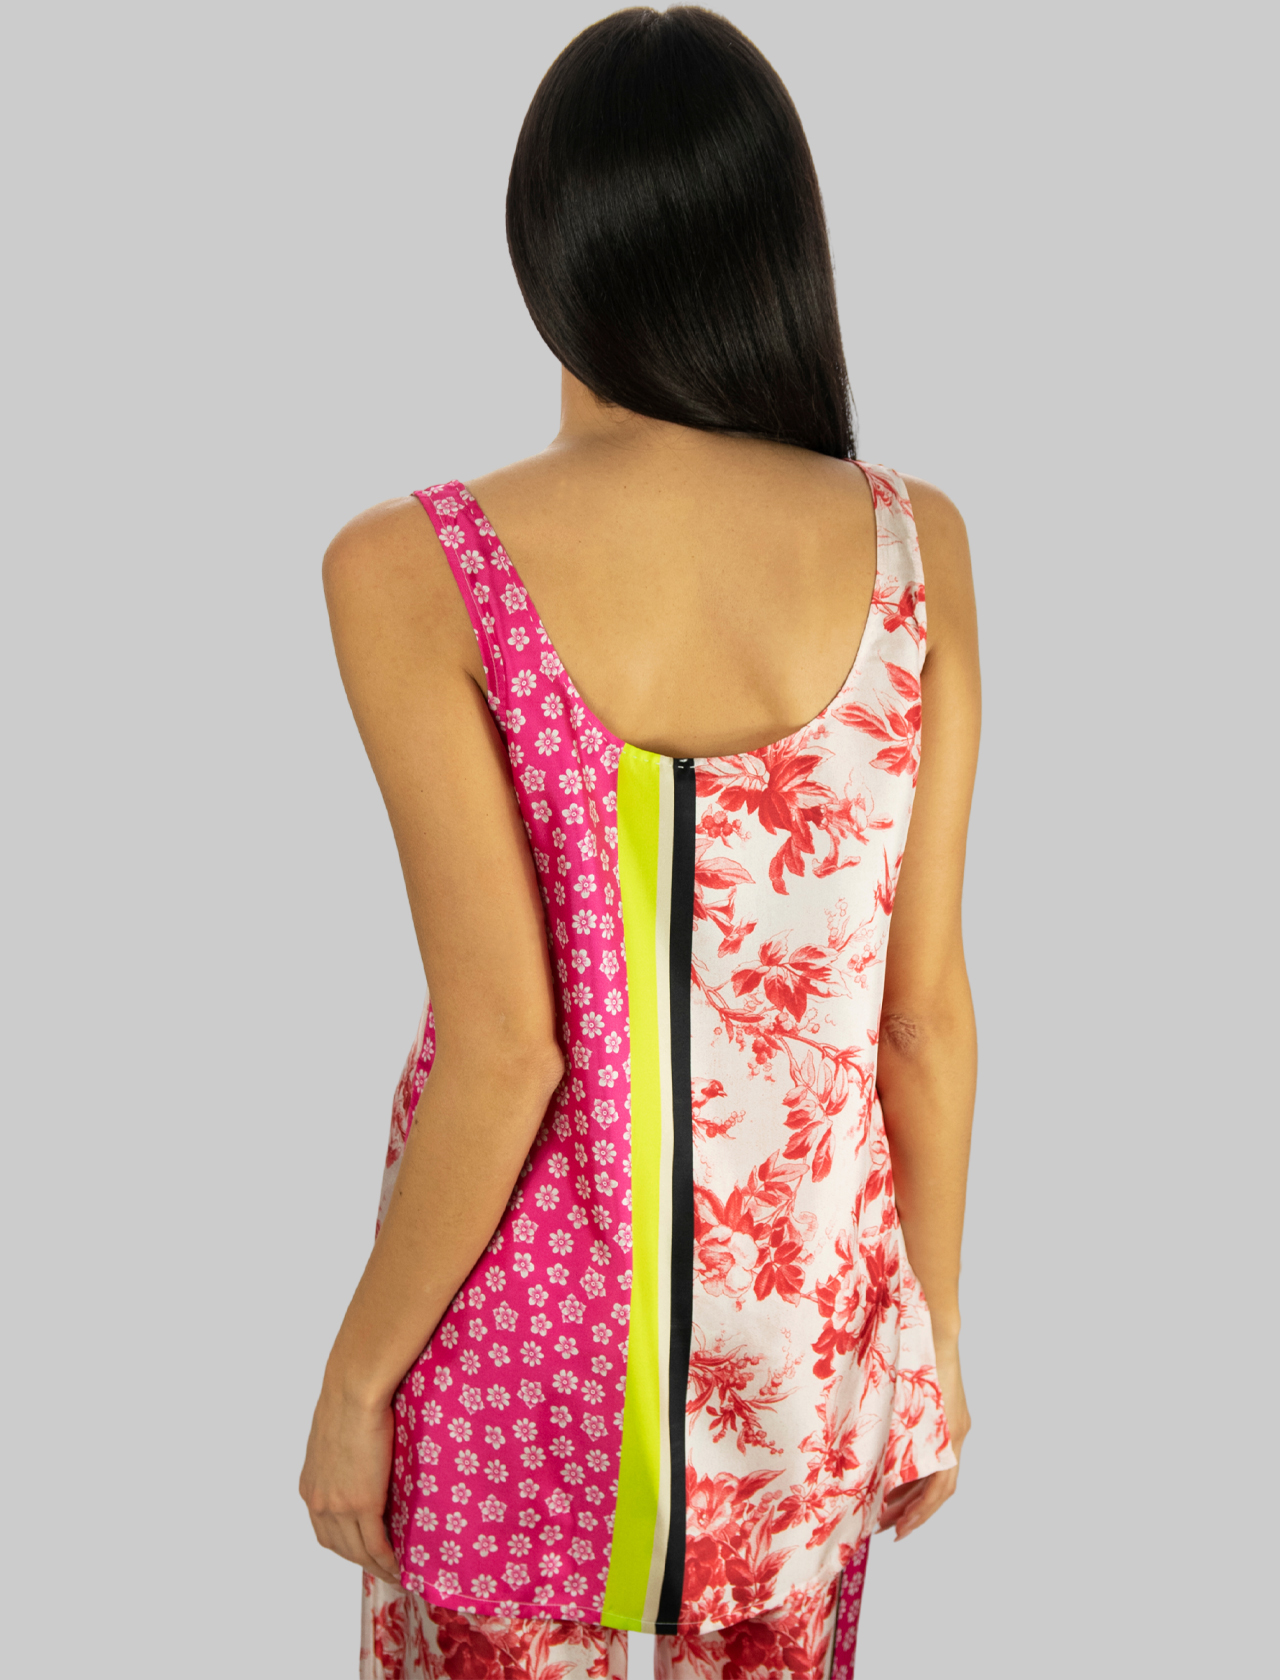 Women's Clothing Long Tank Top in Pink Patterned Silk Collection Print Maliparmi |  | JP540730091B3242